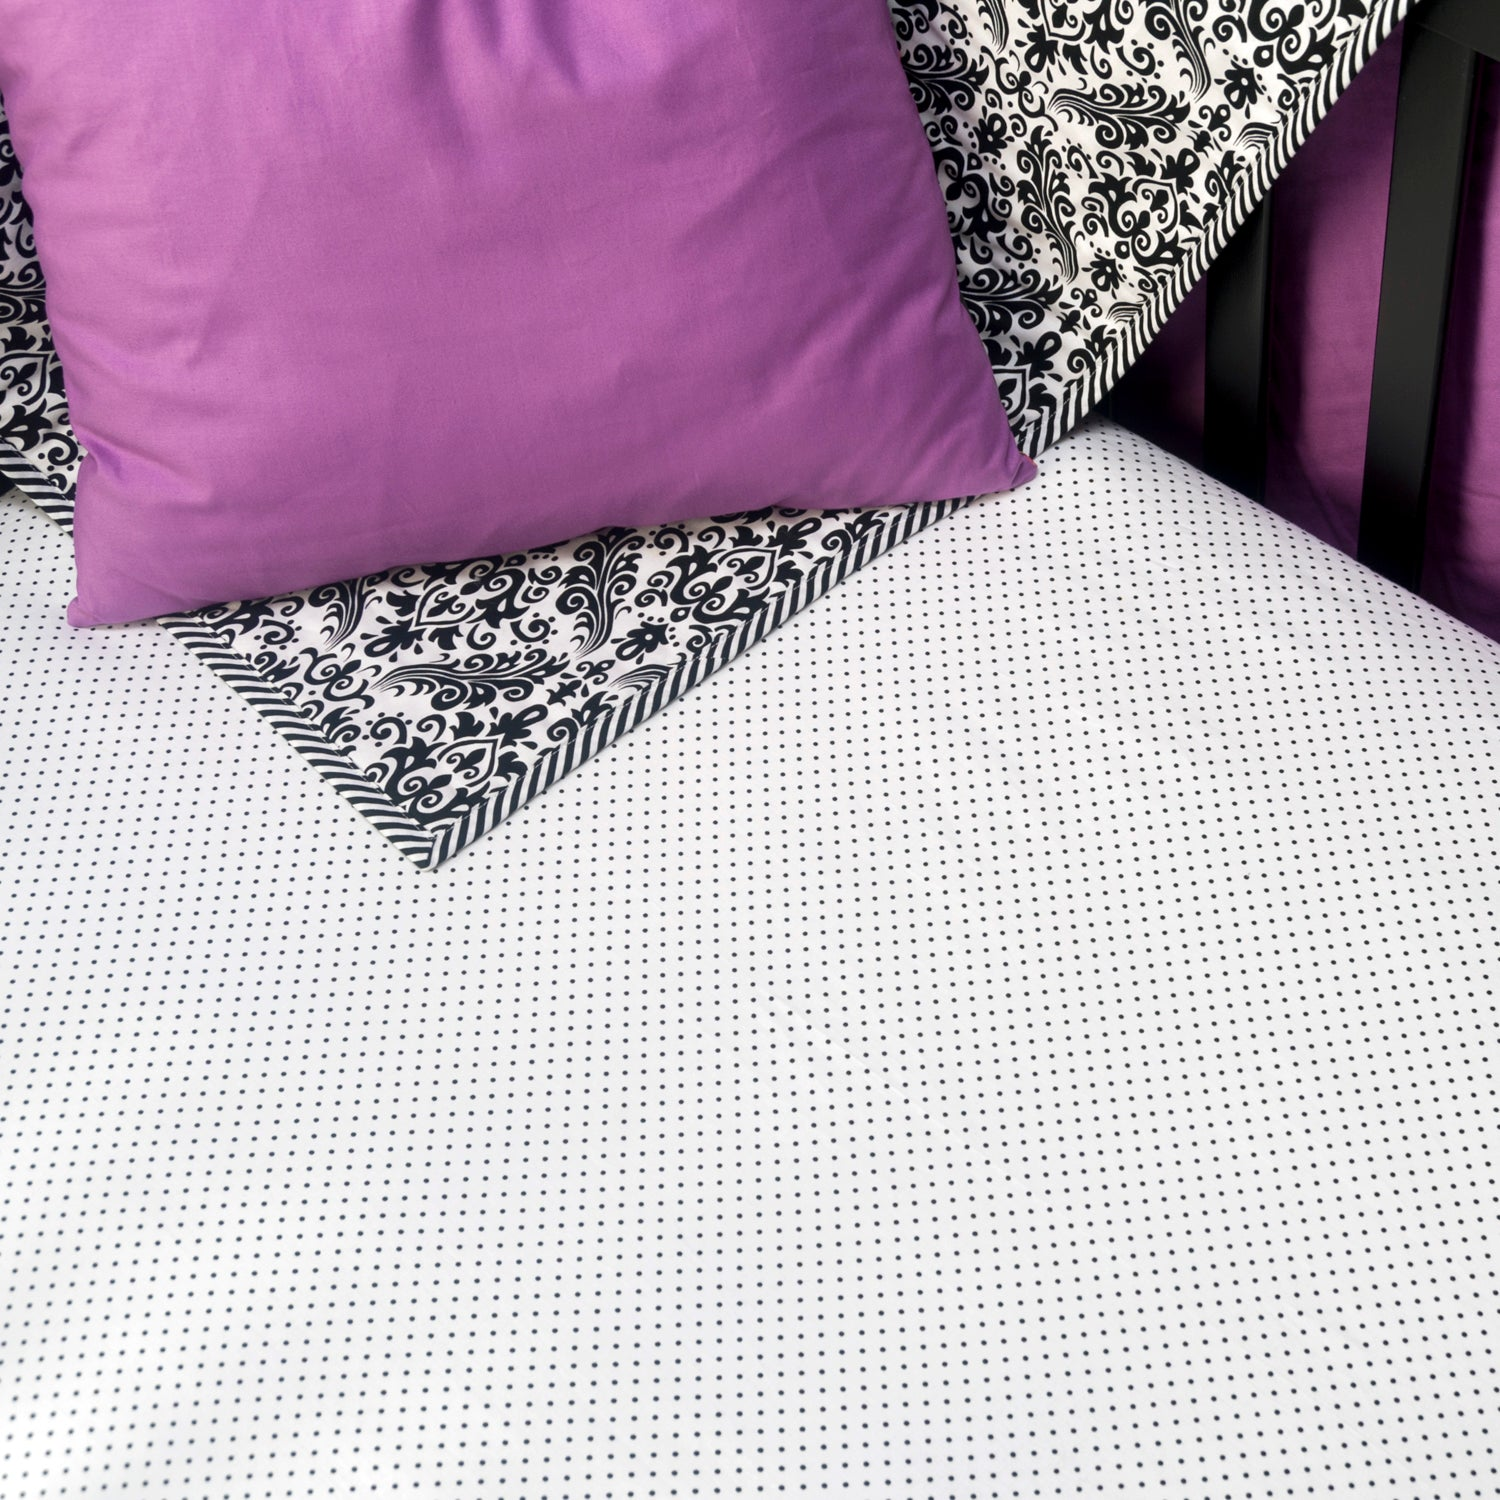 Cotton Fitted Crib Sheet - Polka Dot